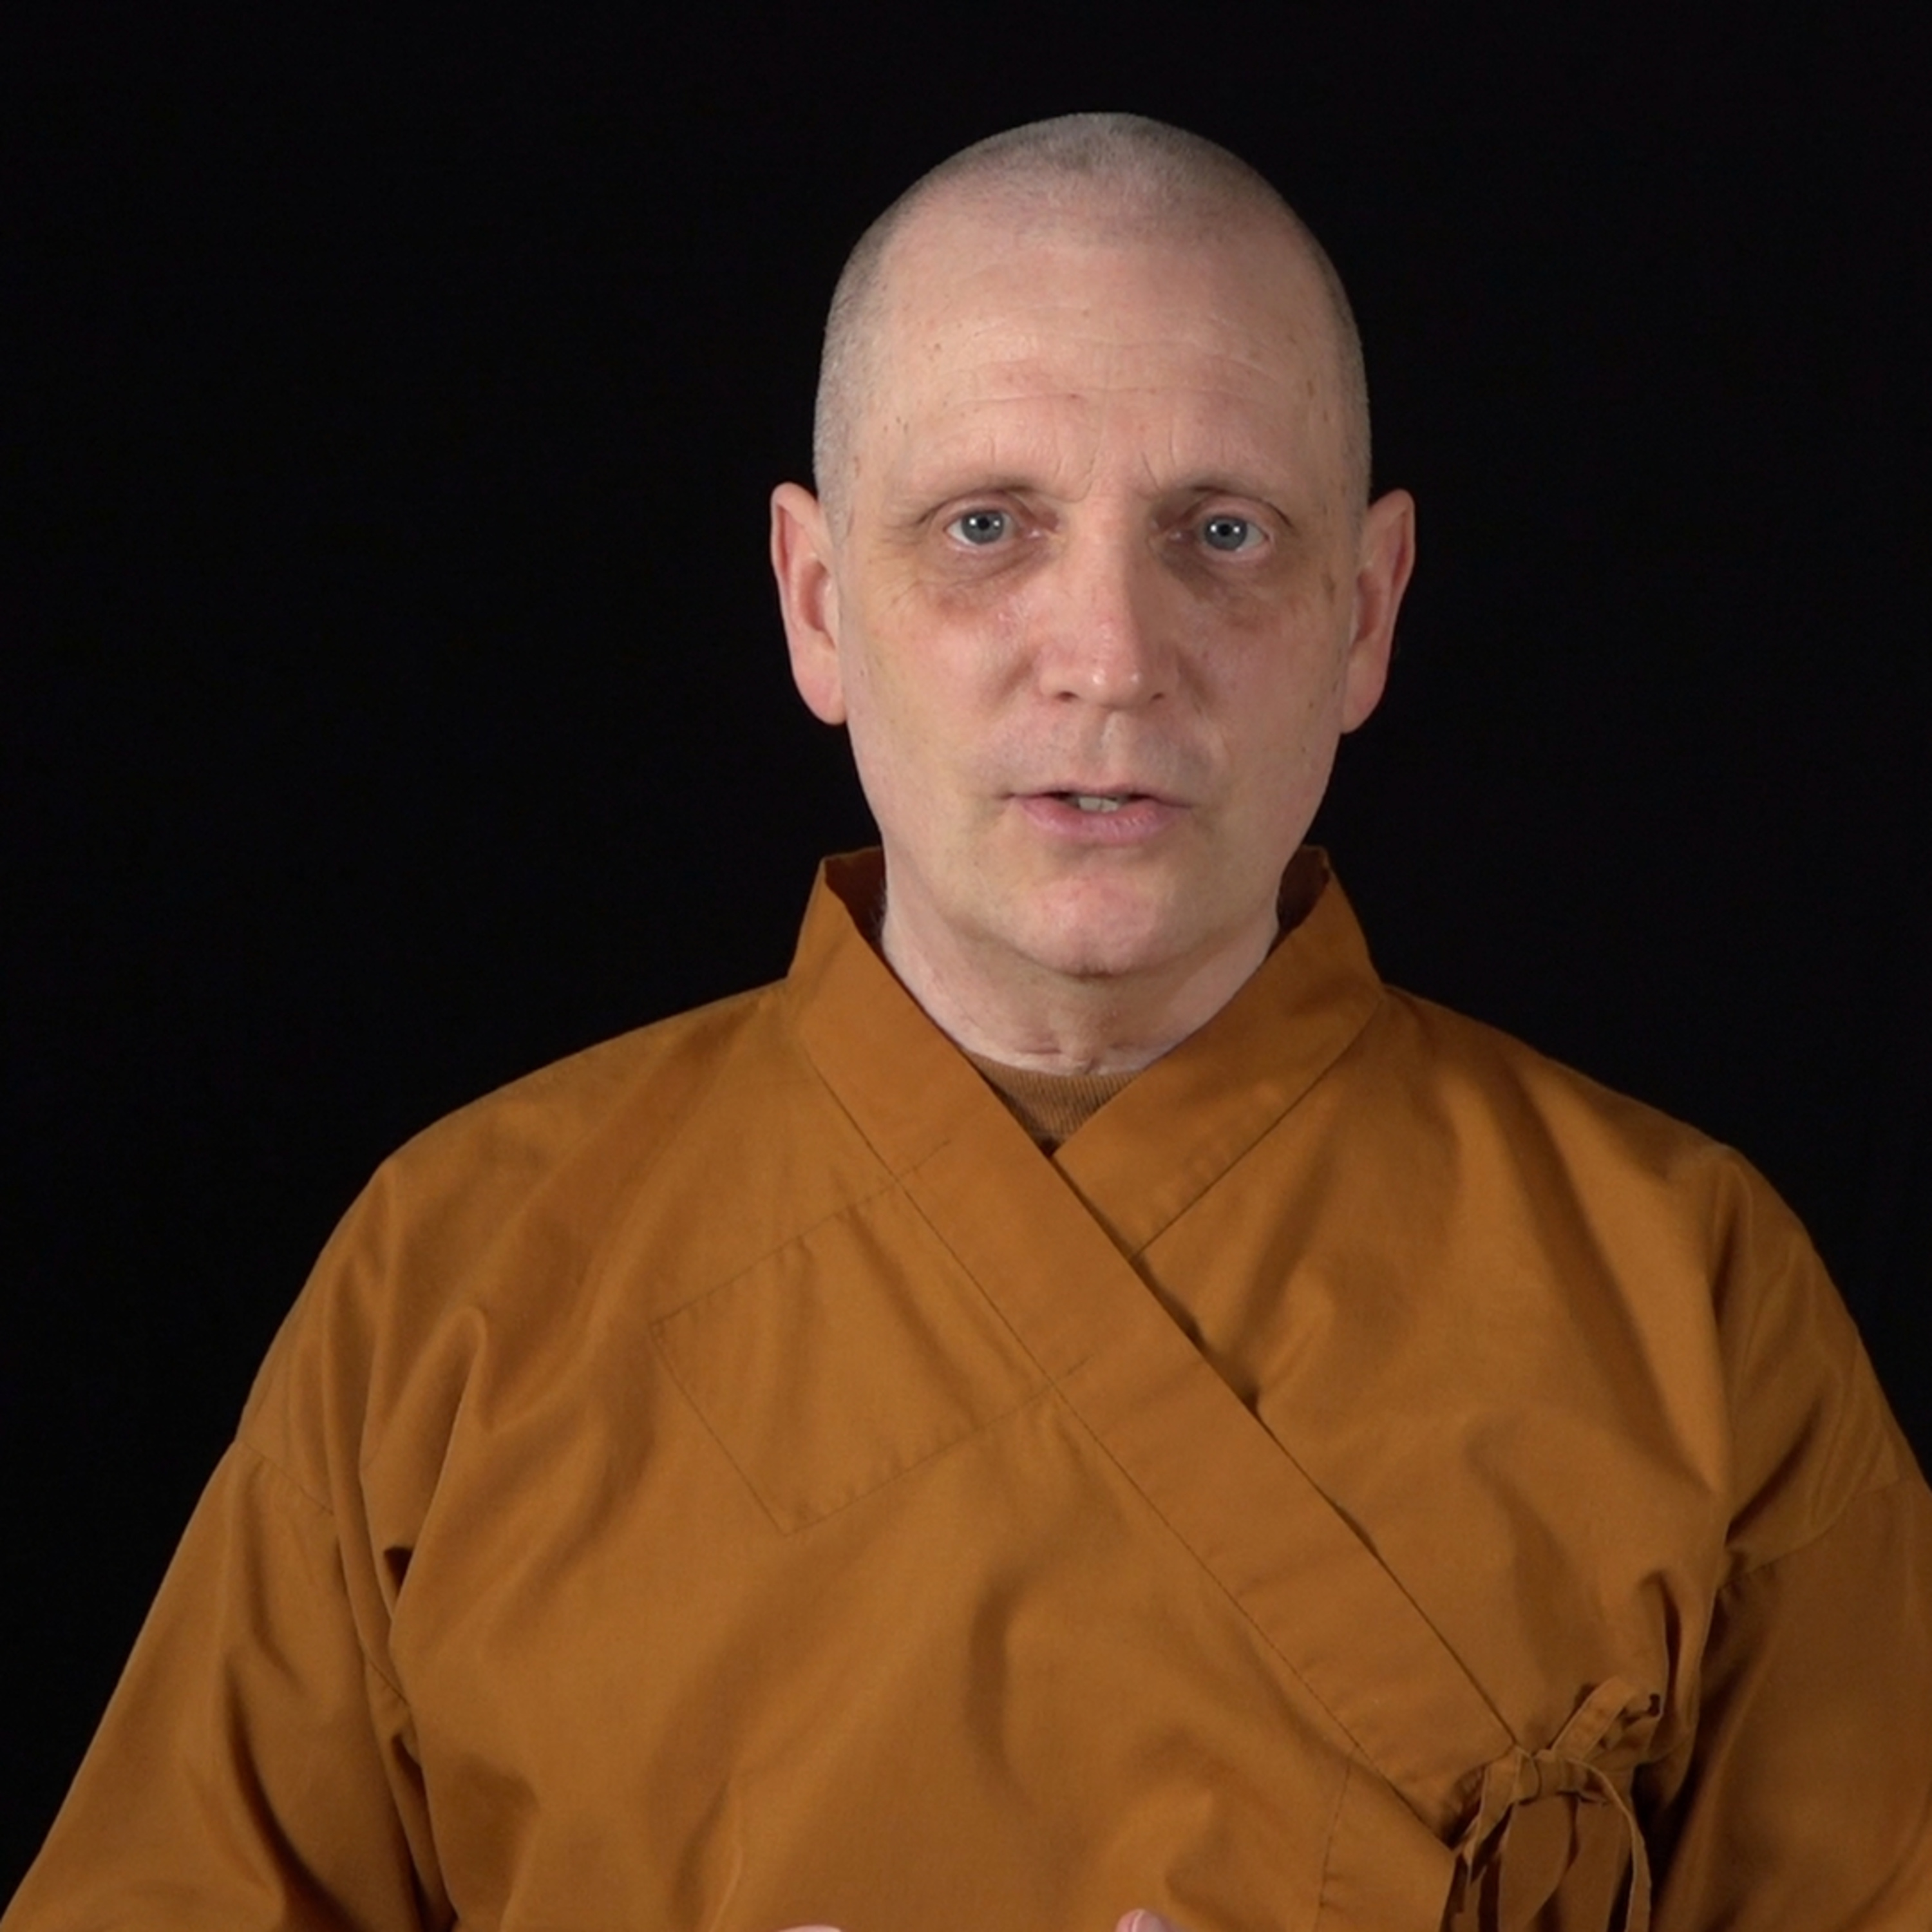 The Noble Eightfold Path (6) - Right Effort